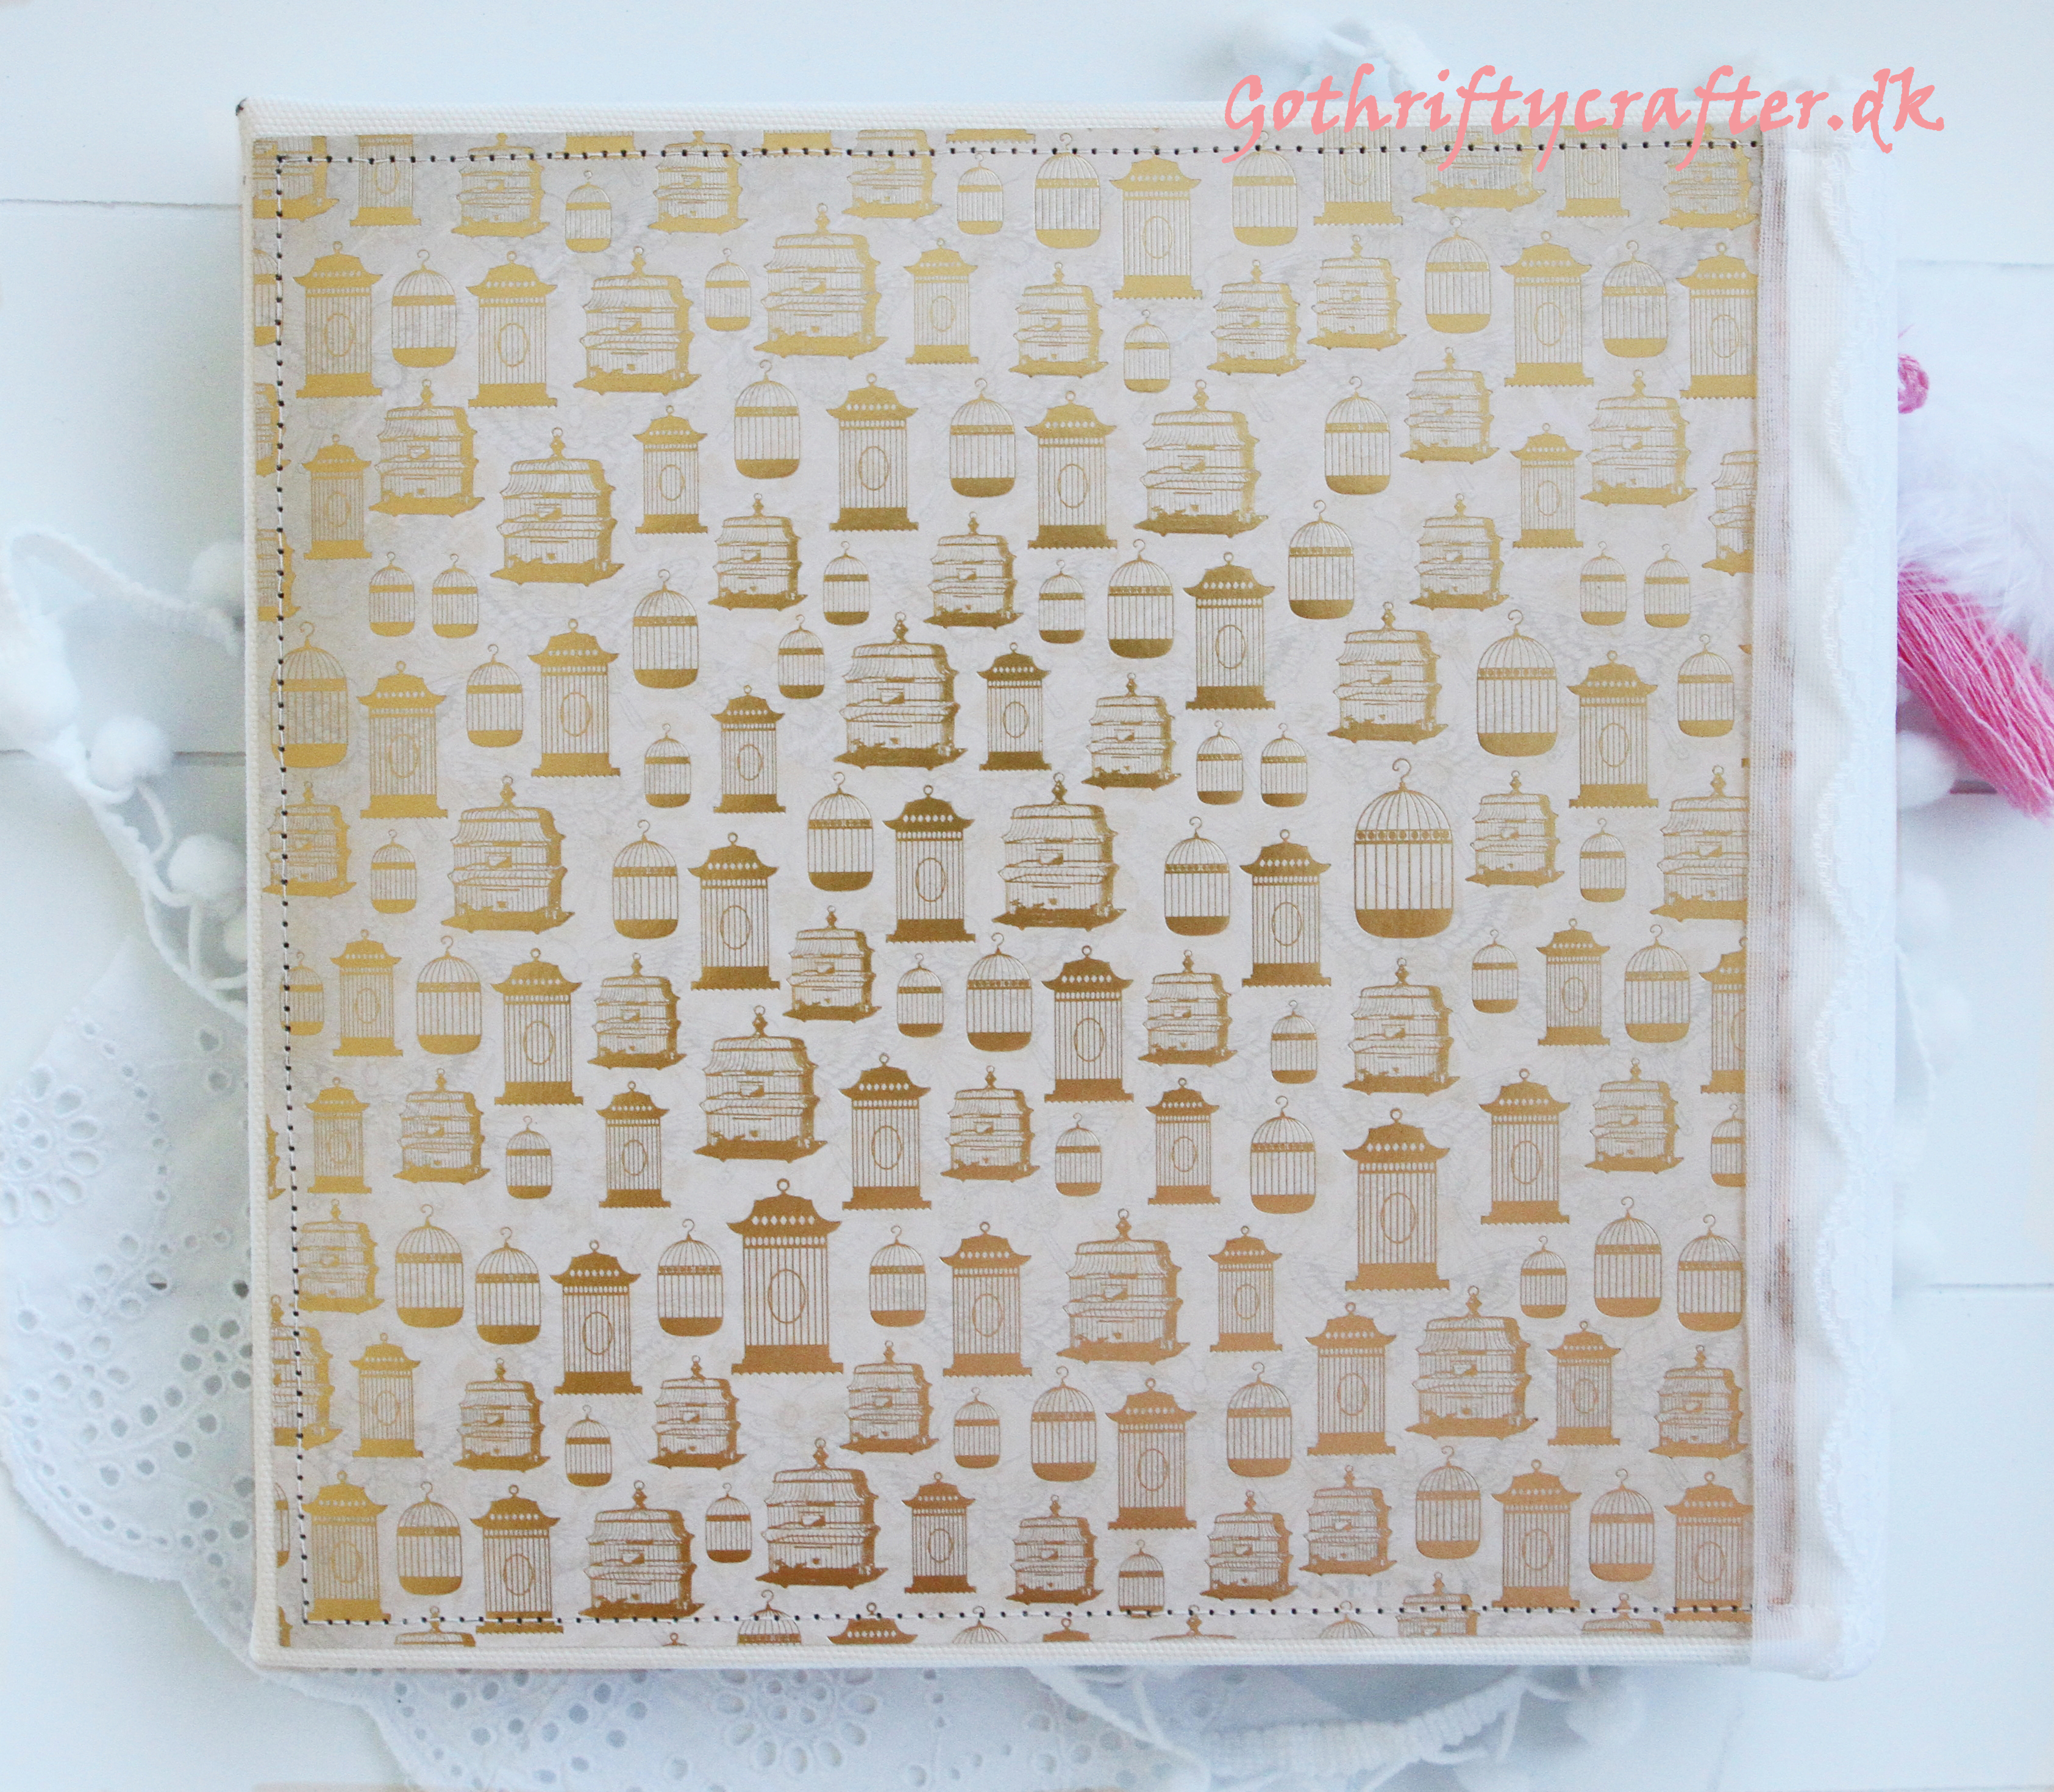 Gothriftycrafter altered album scandinavian style for Fabrika Decoru pink white gold backjpg